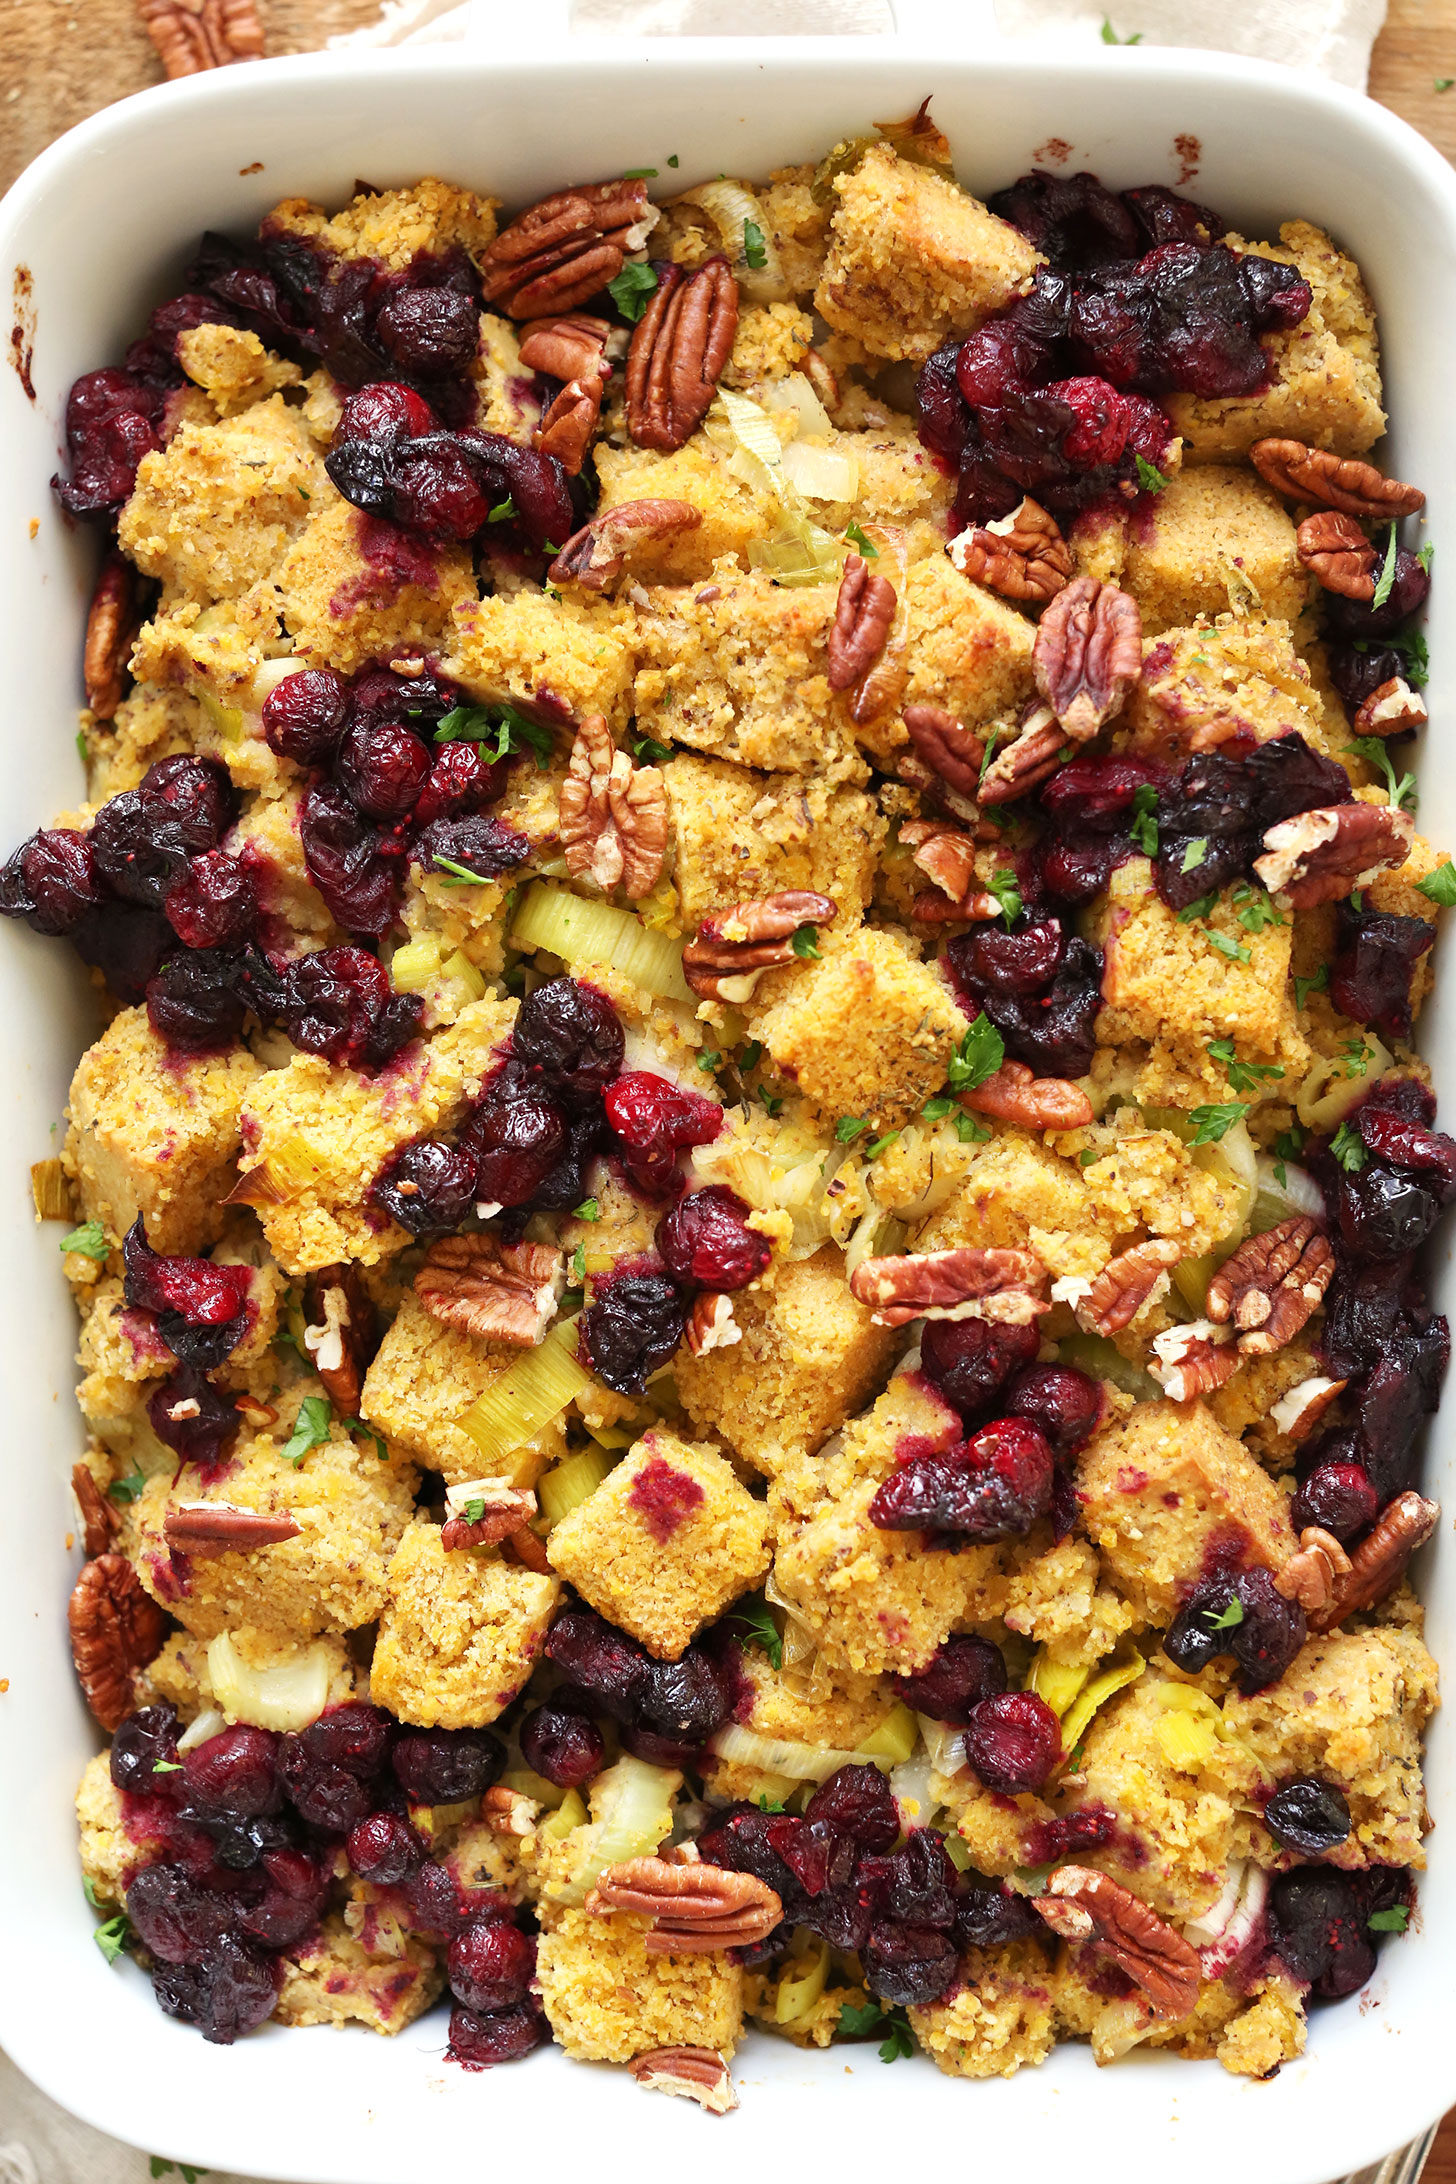 Ceramic baking dish with flavorful savory vegan gluten-free cornbread stuffing